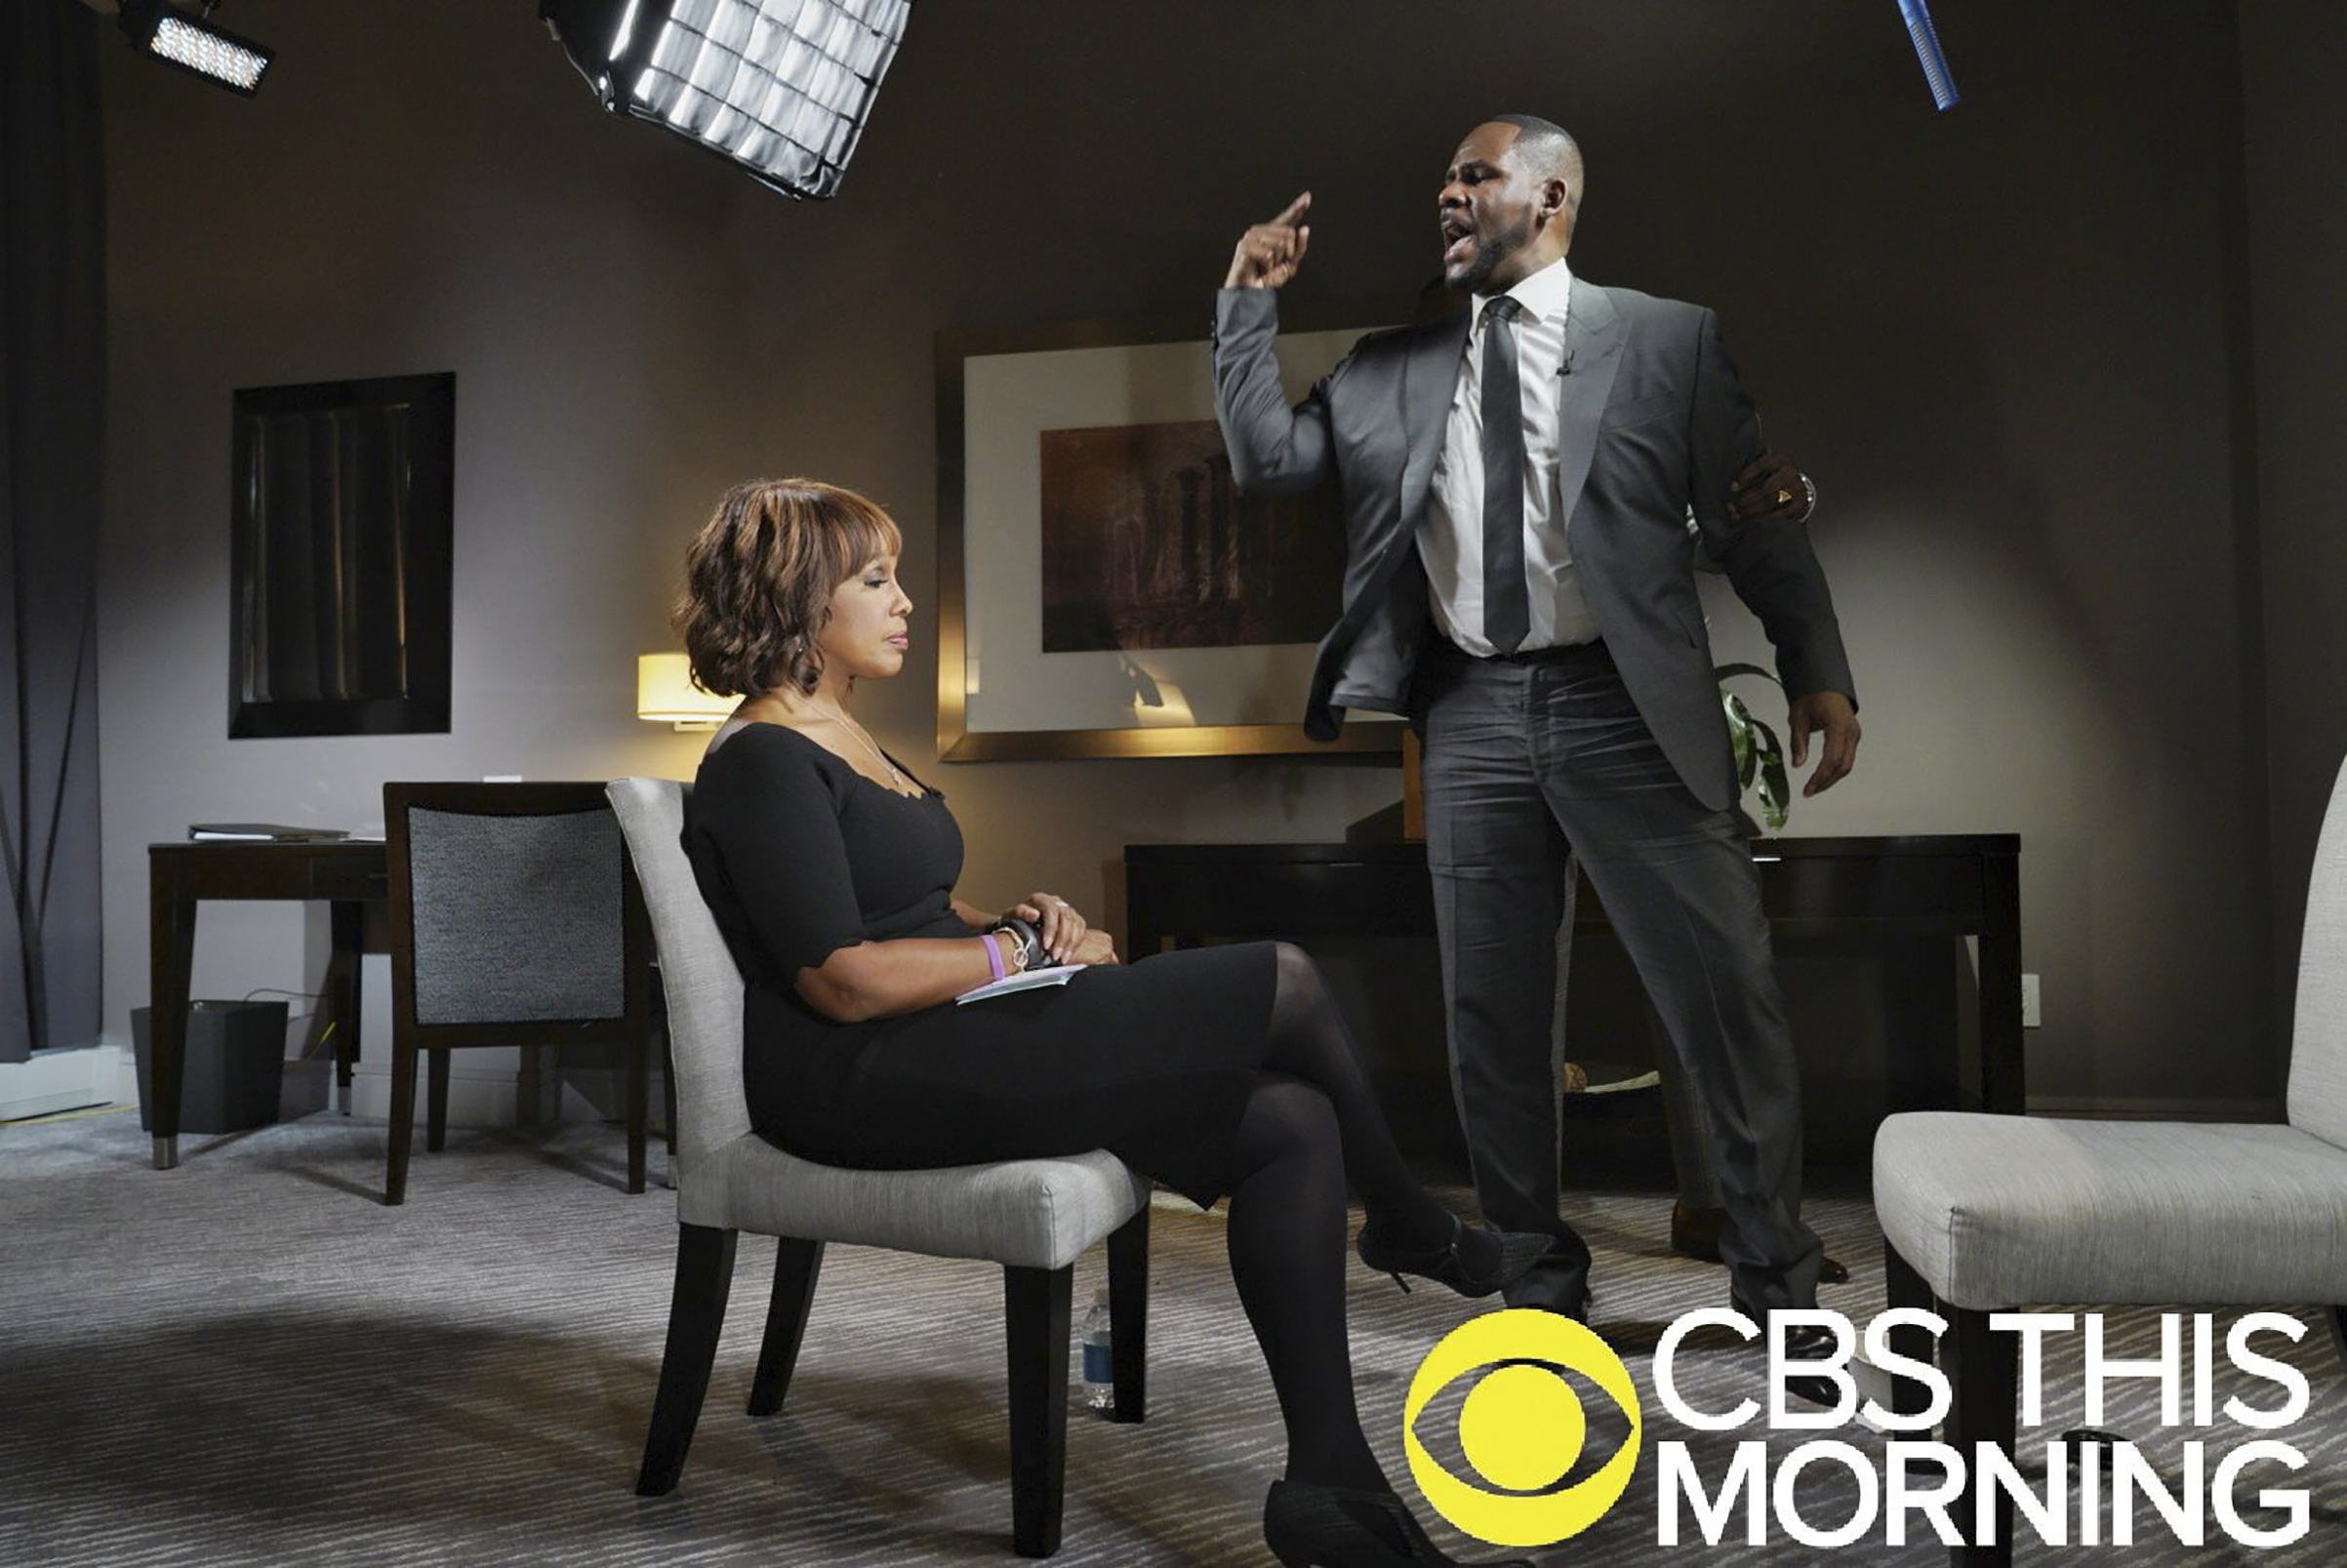 King with her most recent newsmaking interview subject, R. Kelly in  Chicago